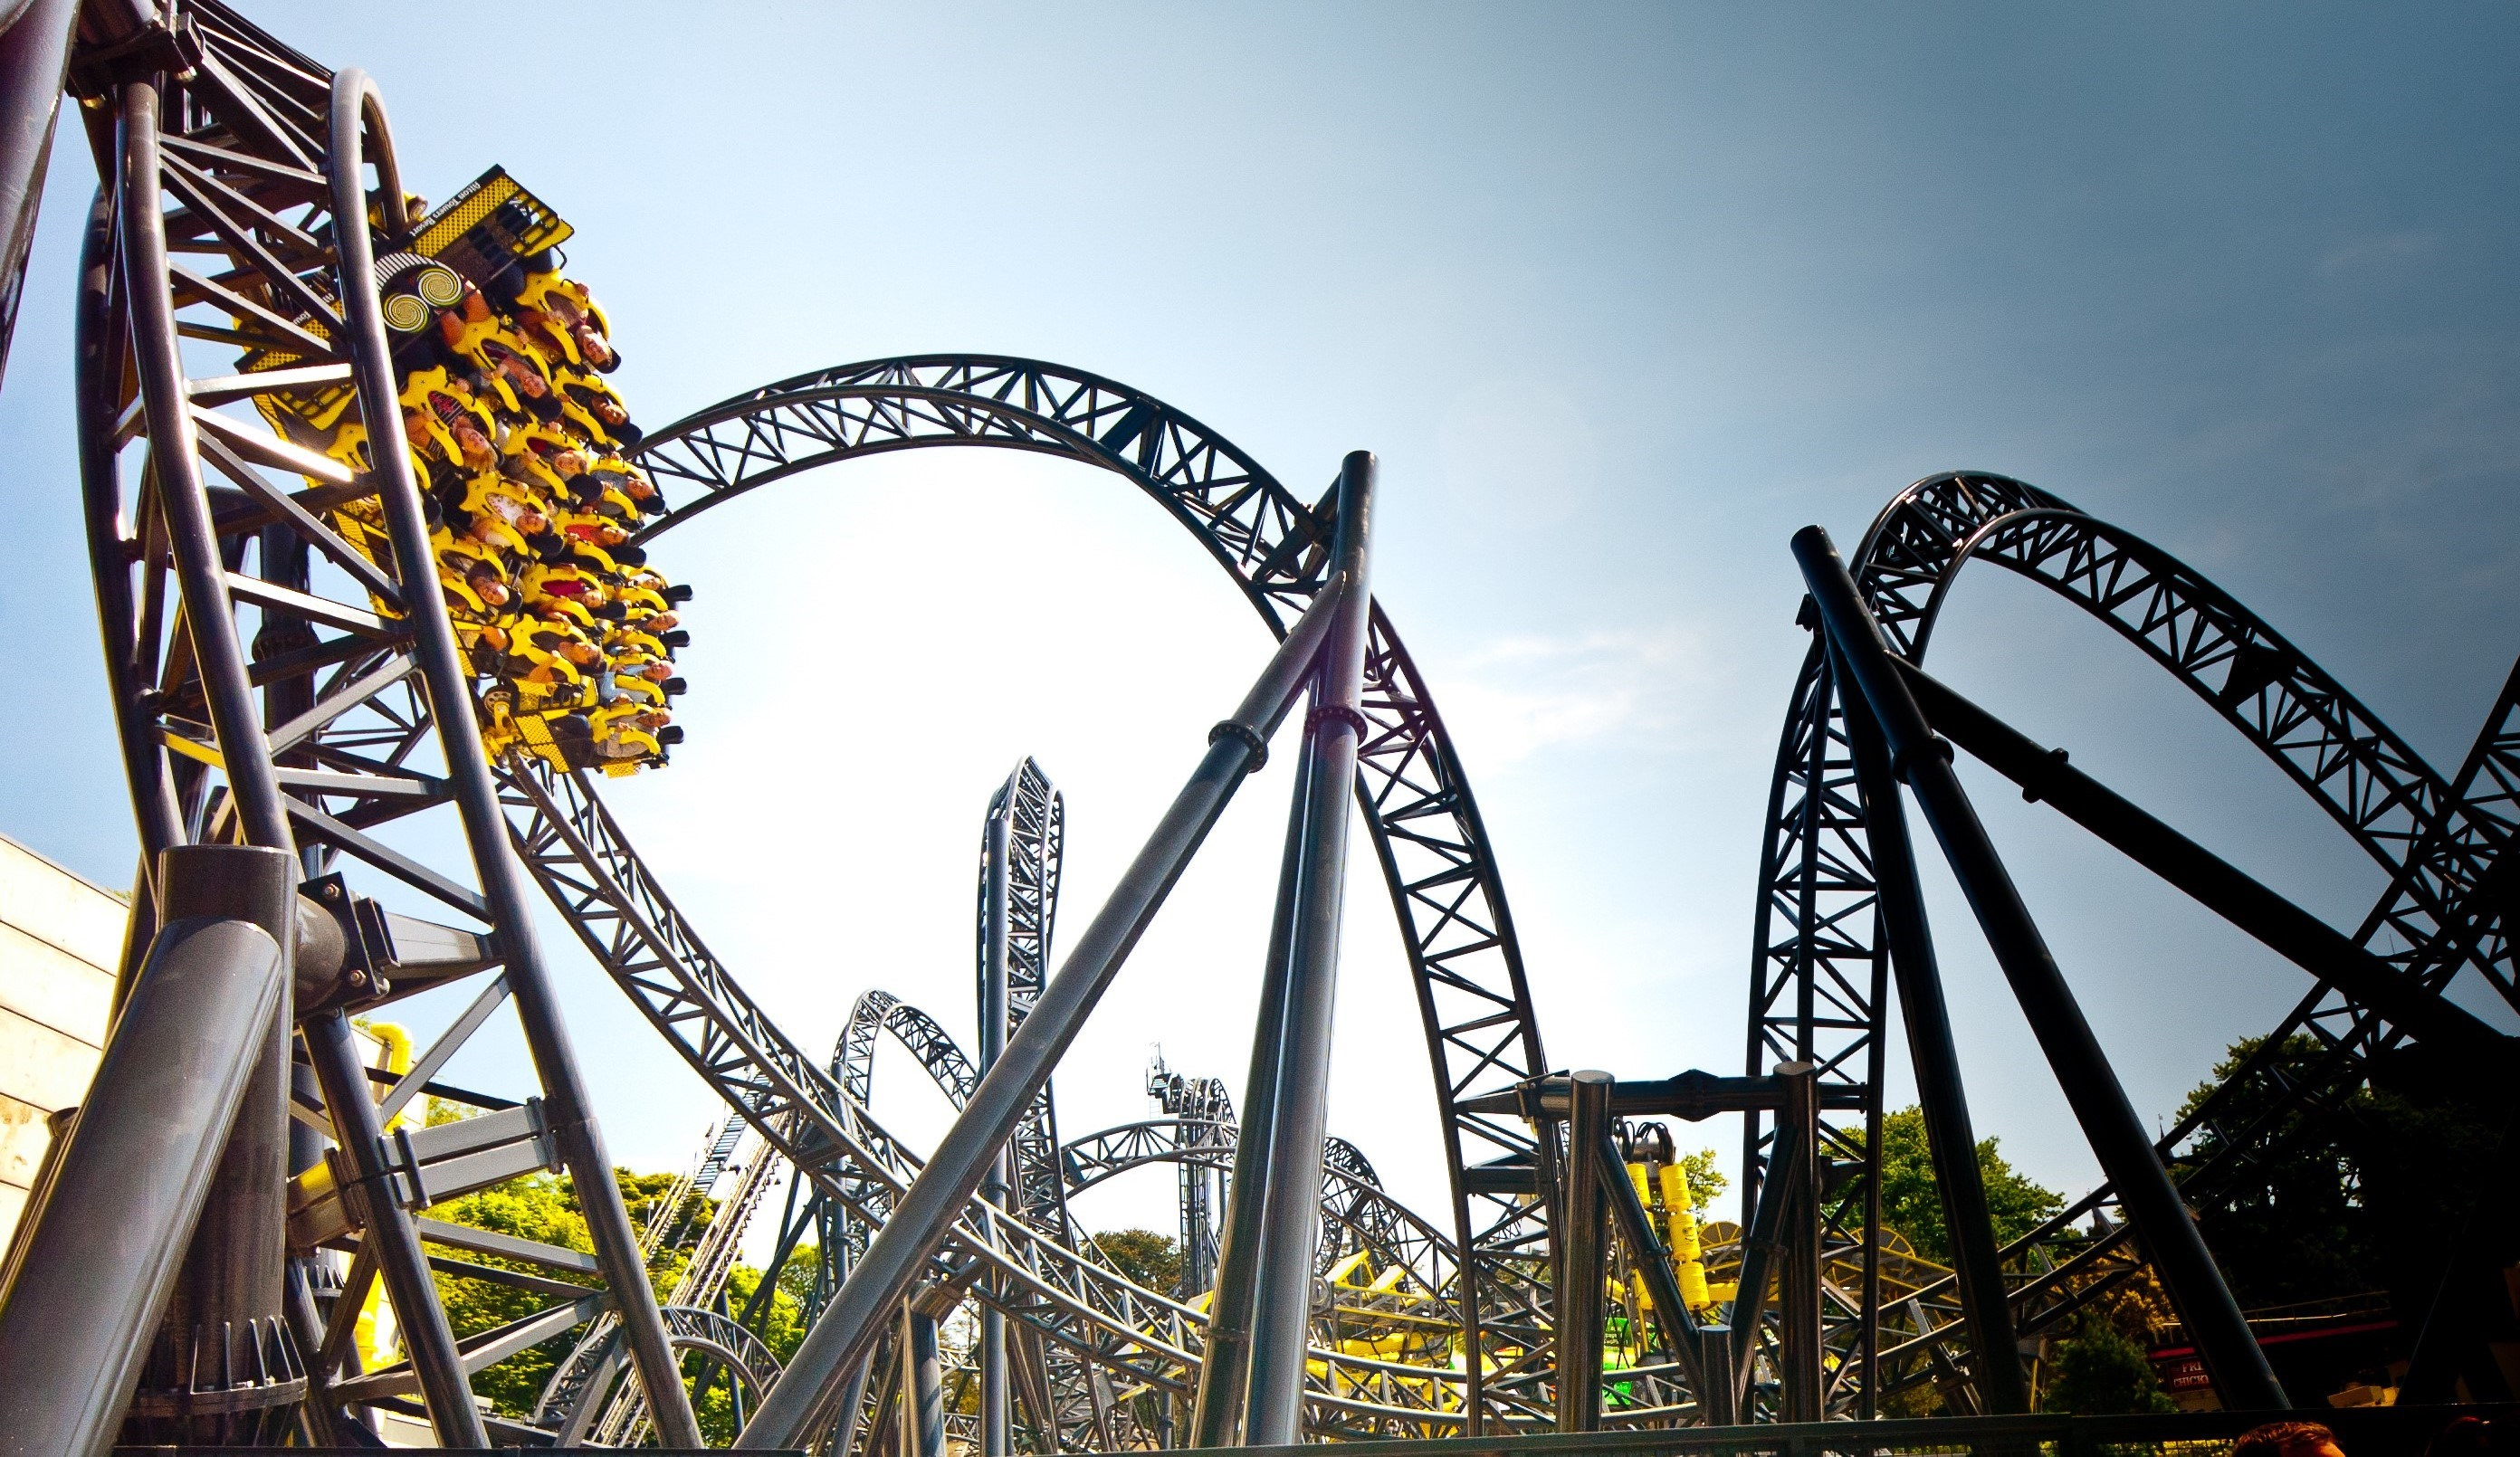 The Smiler world record rollercoaster upside-down at Alton Towers